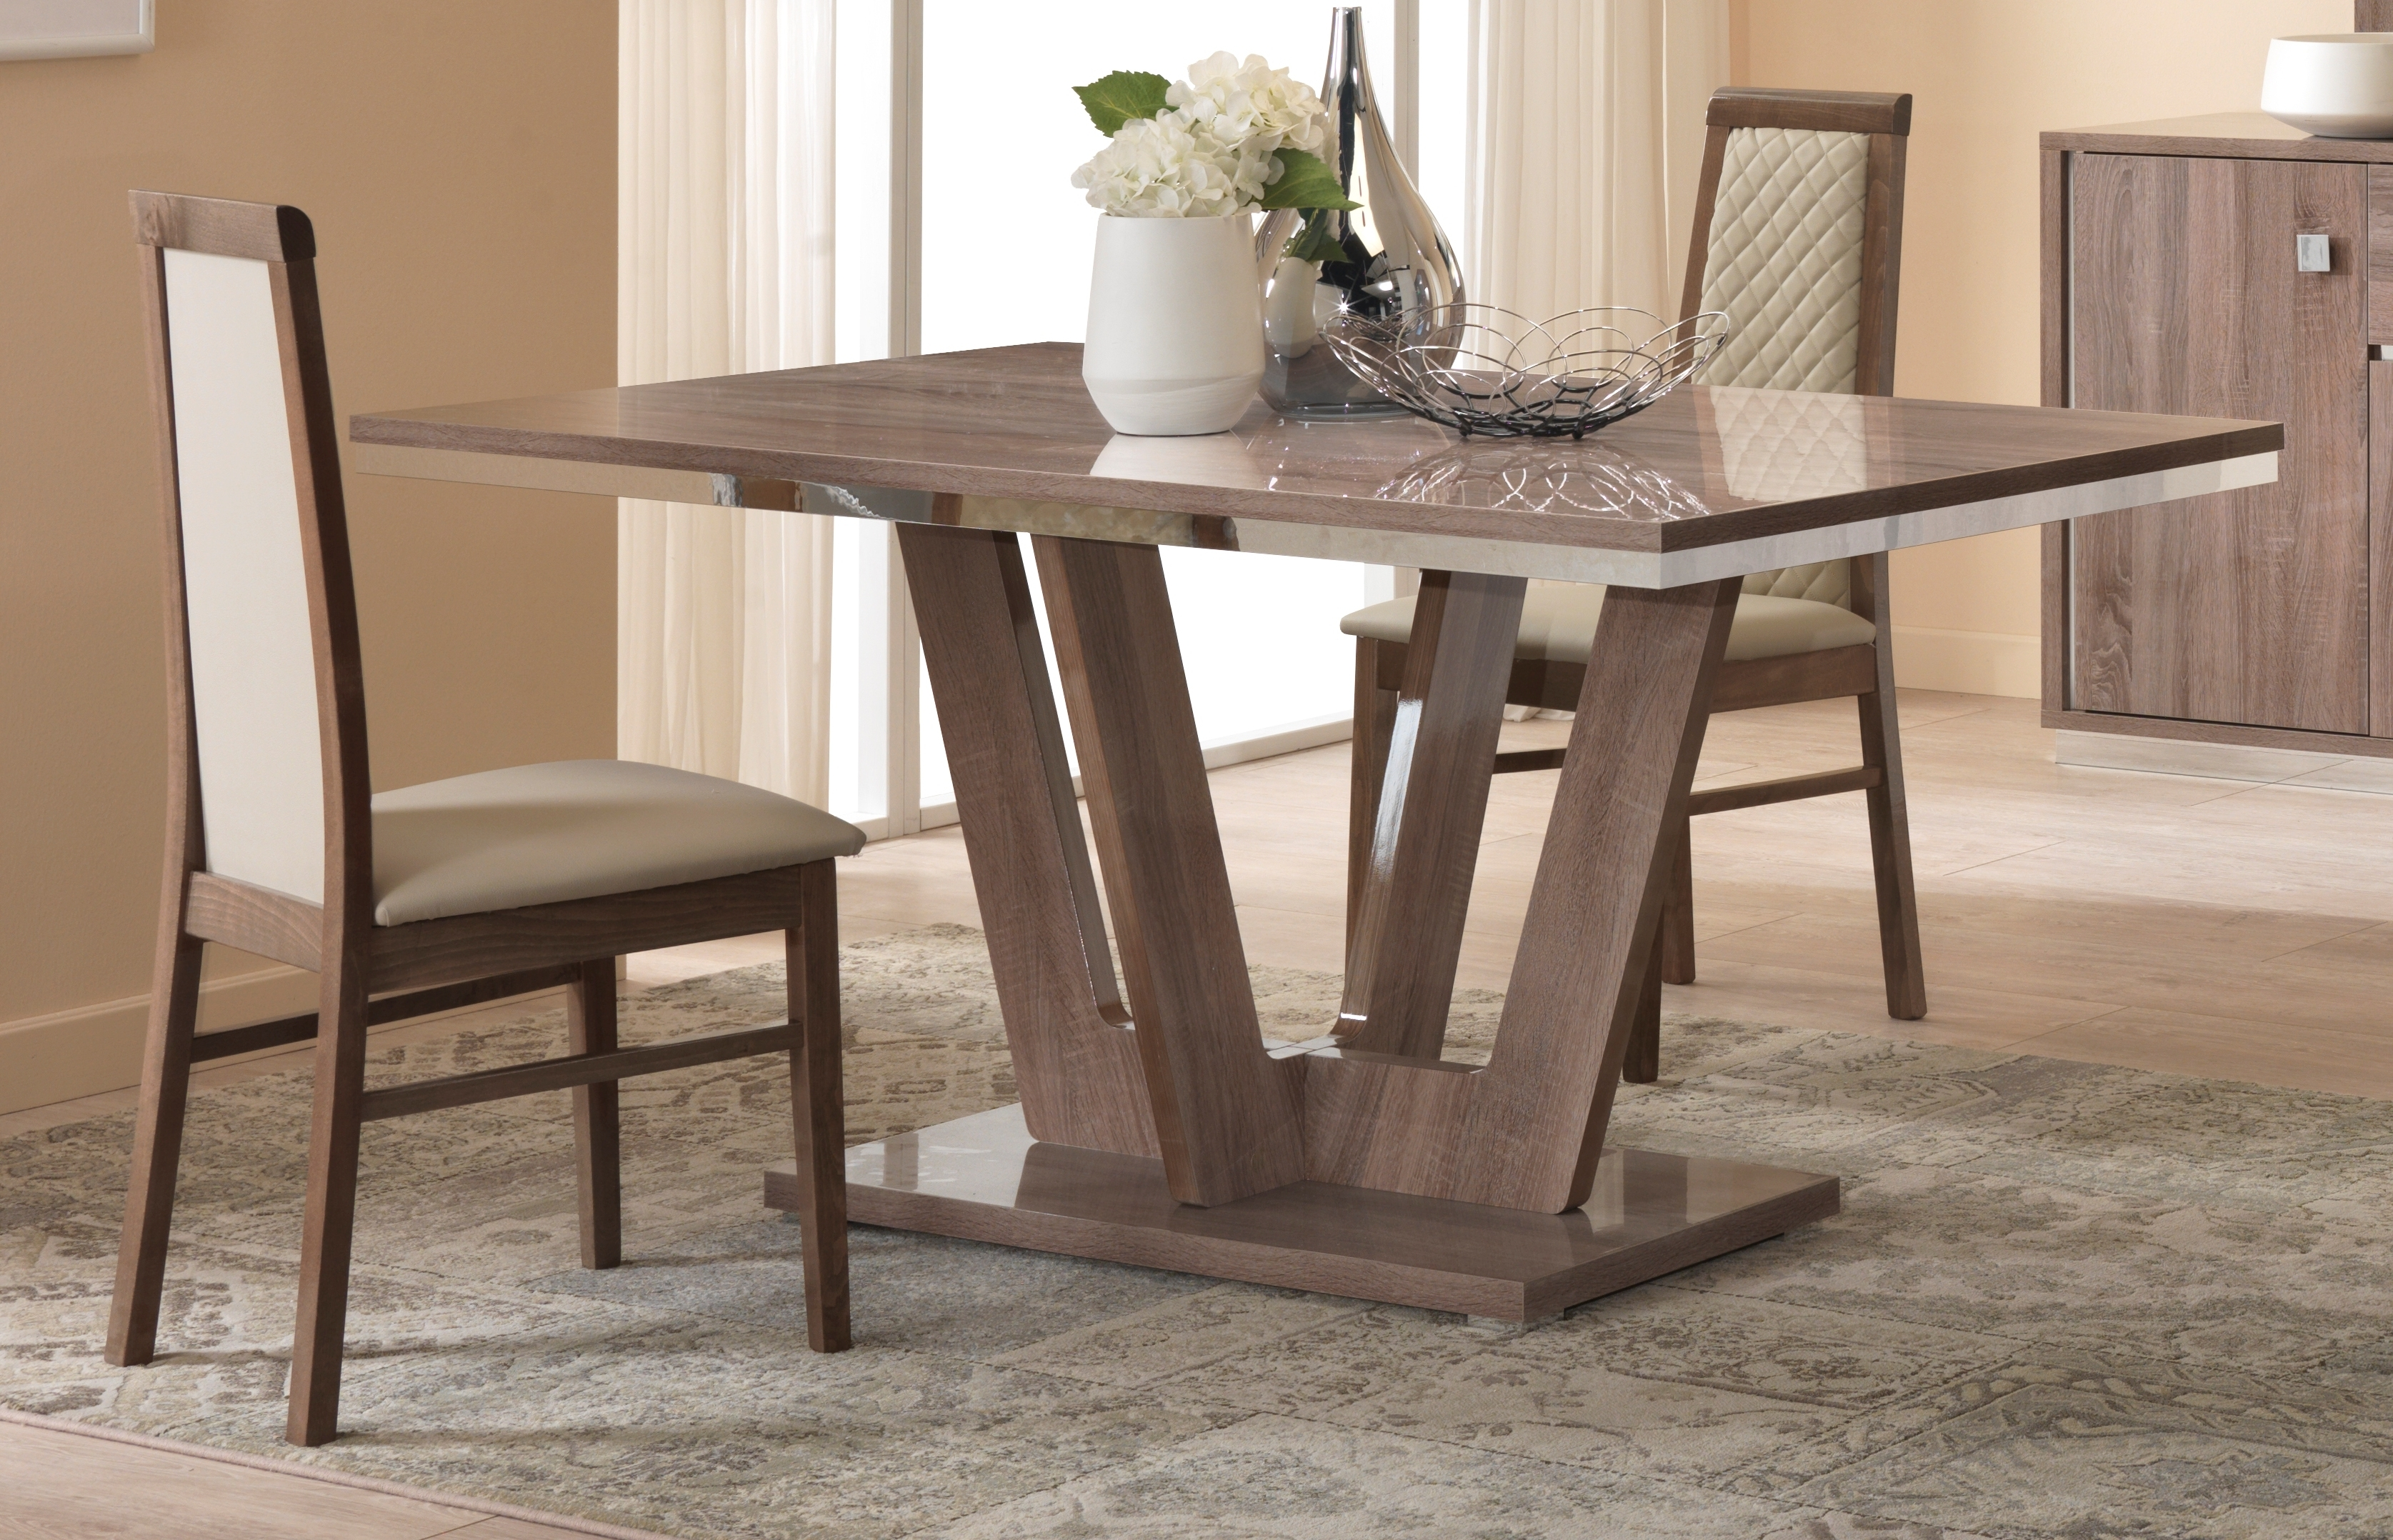 Victor Dining Tables Regarding 2017 Victor Oak Effect Fixed Dining Table – Modish Furnishing (View 22 of 25)